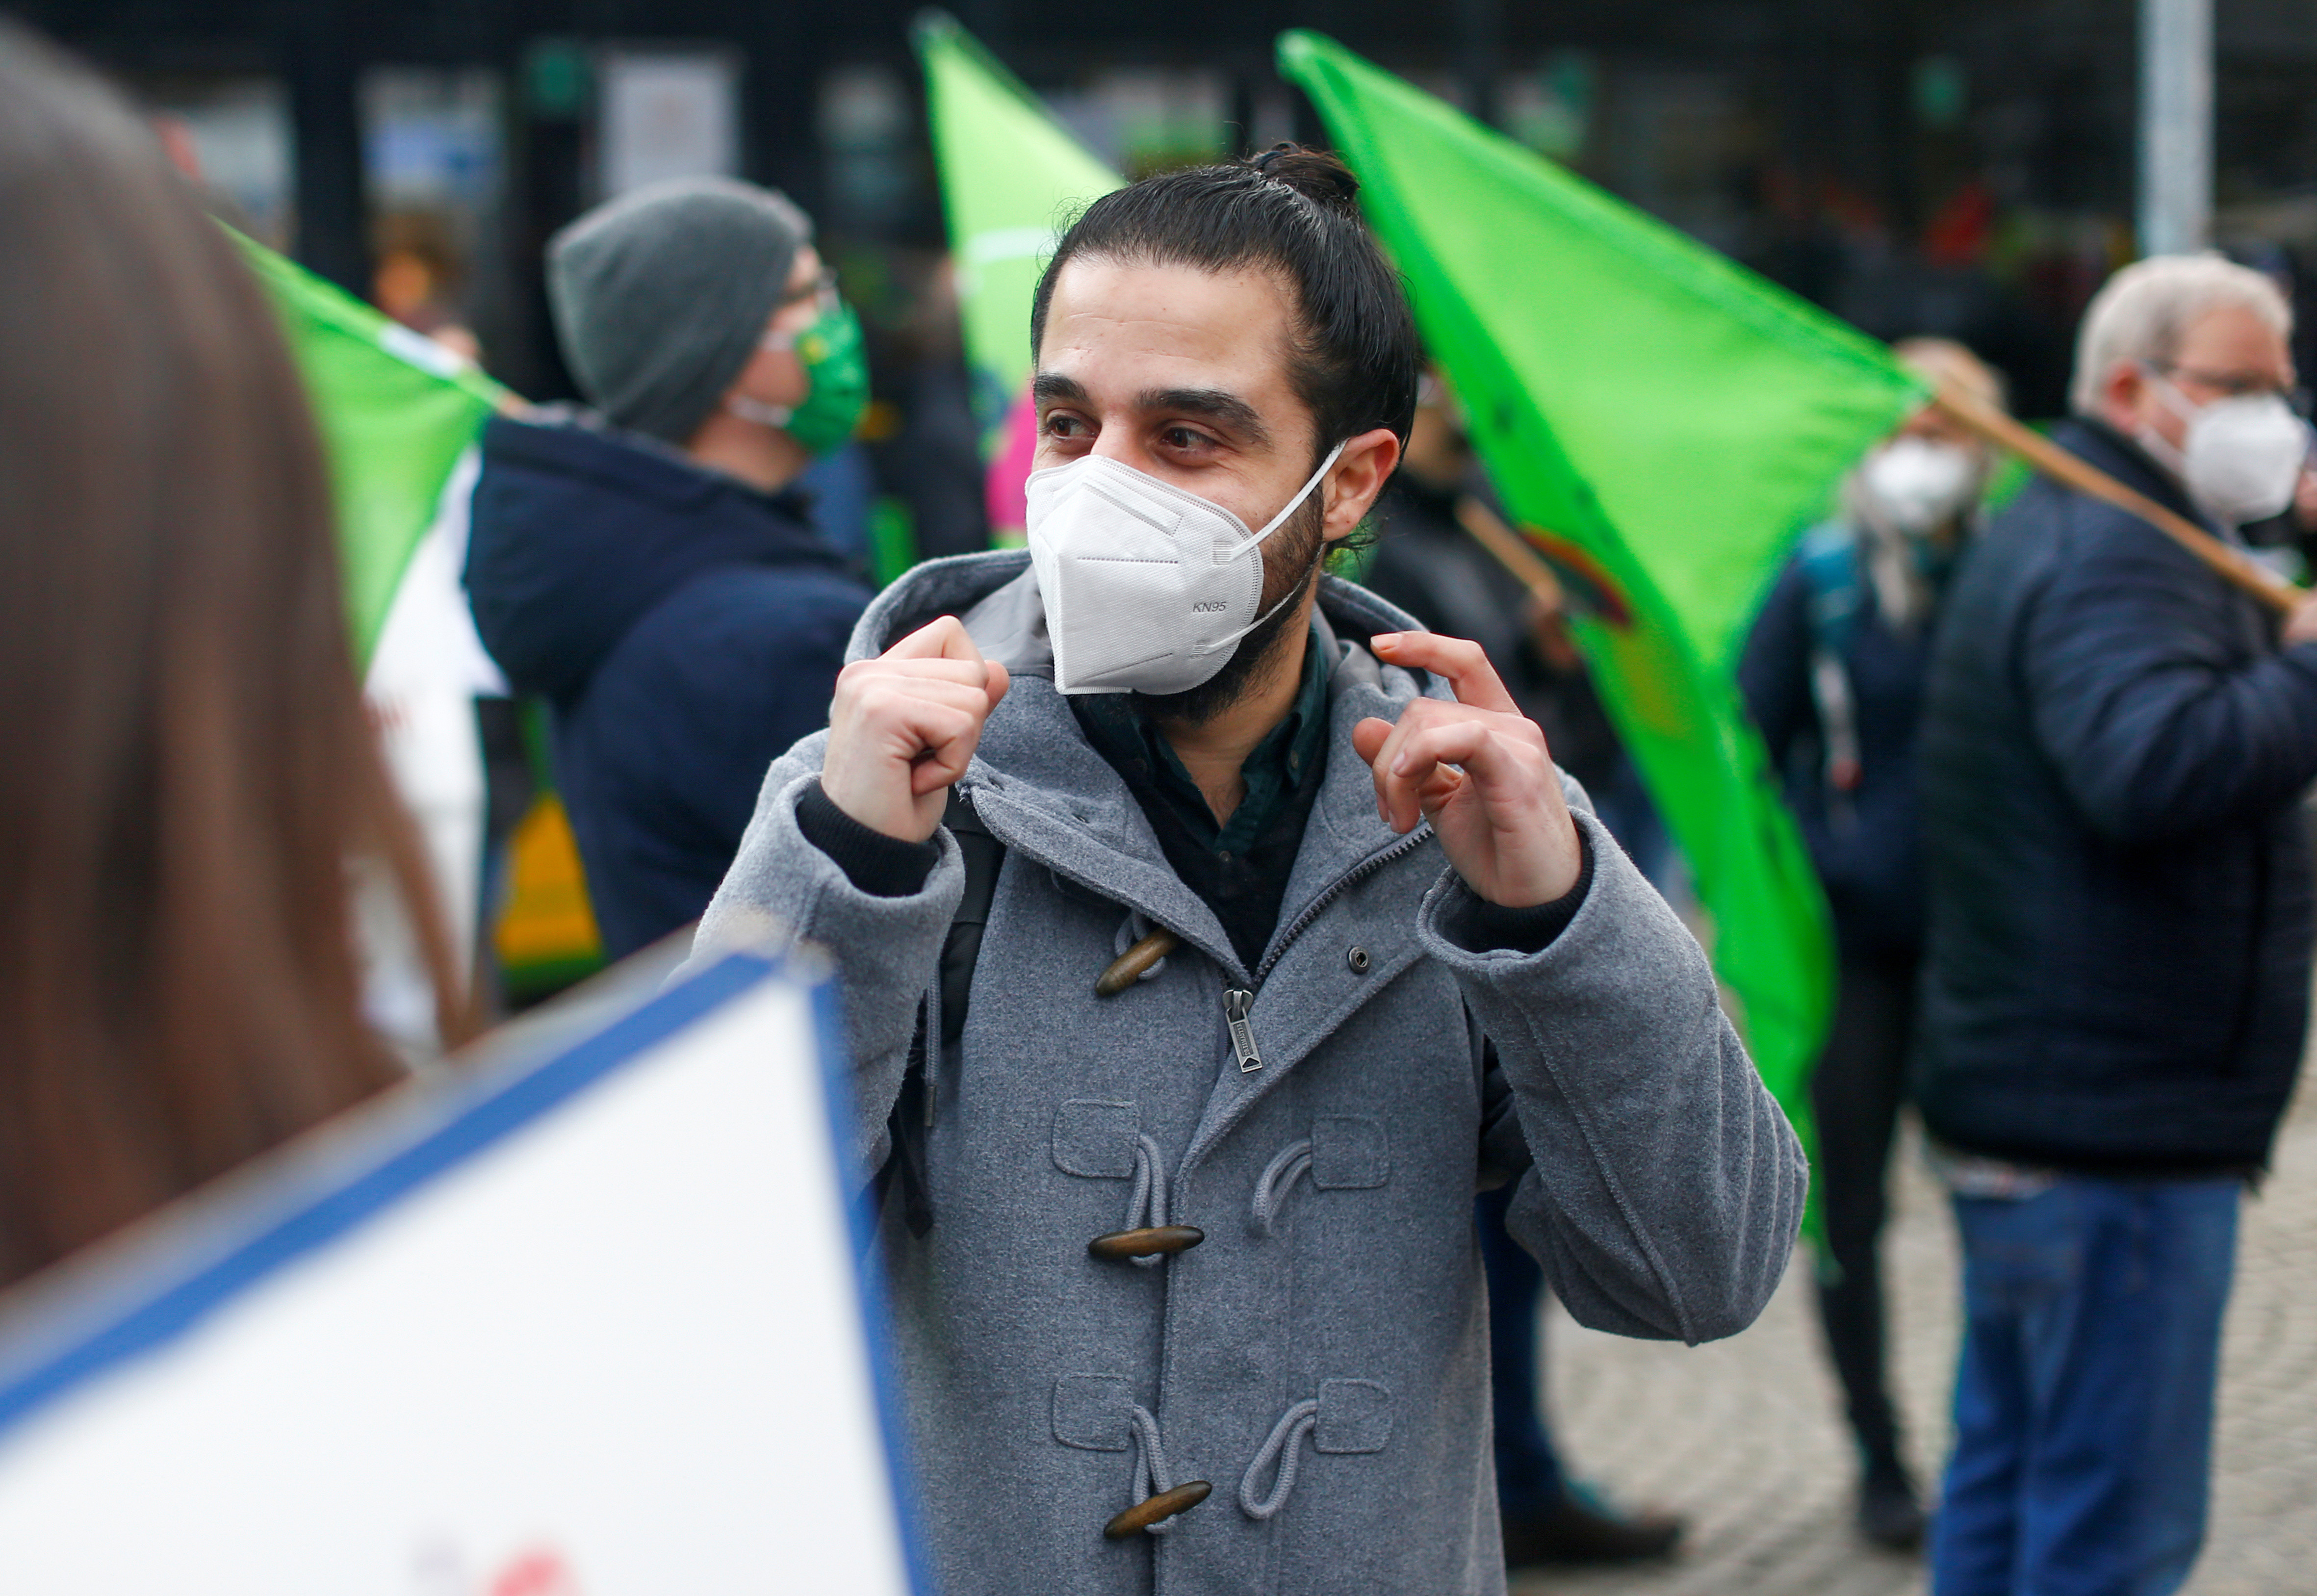 a picture of Syrian migrant Tareq Alaows with a protective face mask on out campaigning